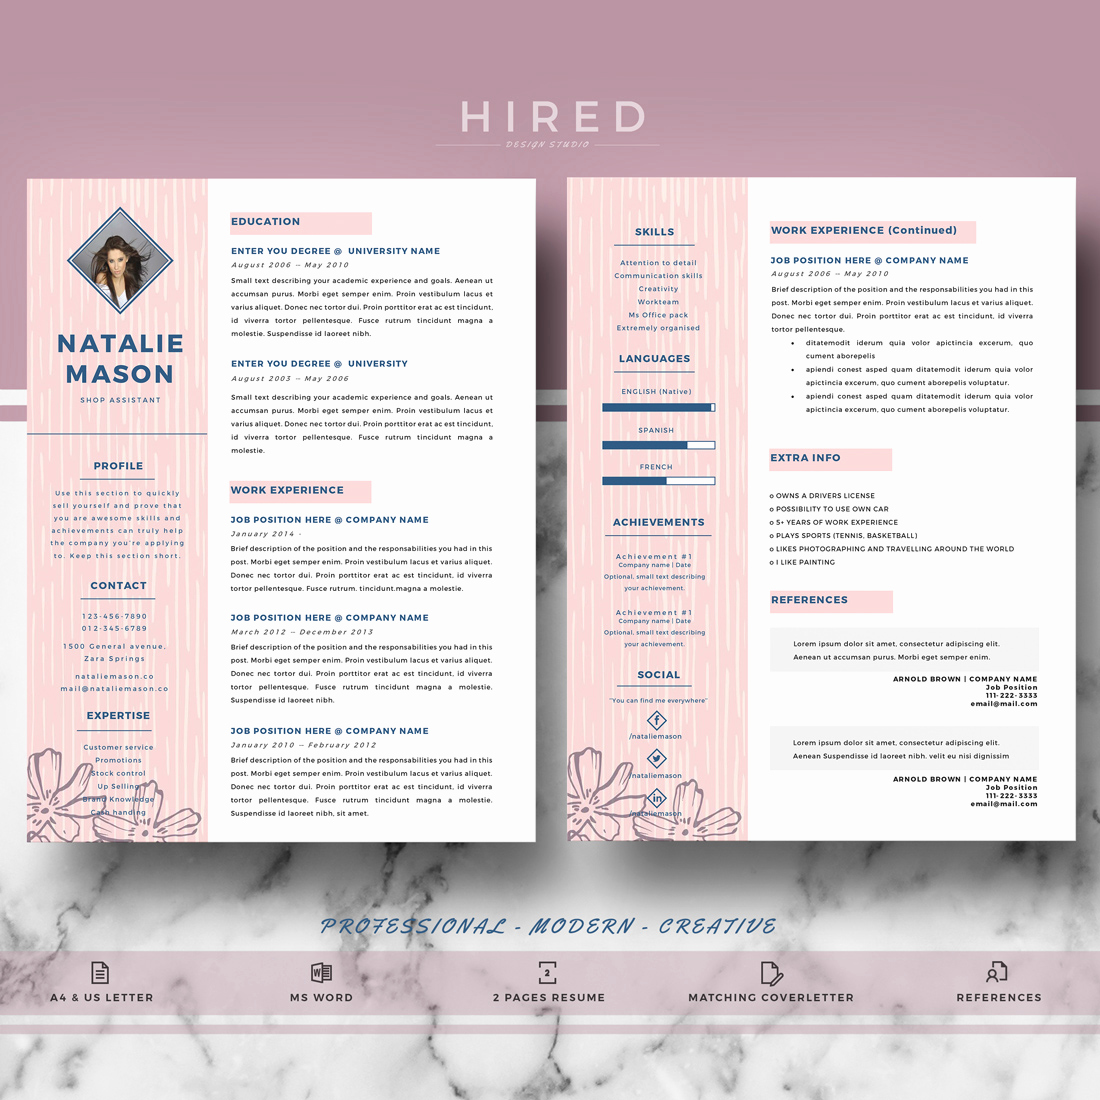 Creative Resume Template Word Fresh Creative Resume Template Archives Hired Design Studio